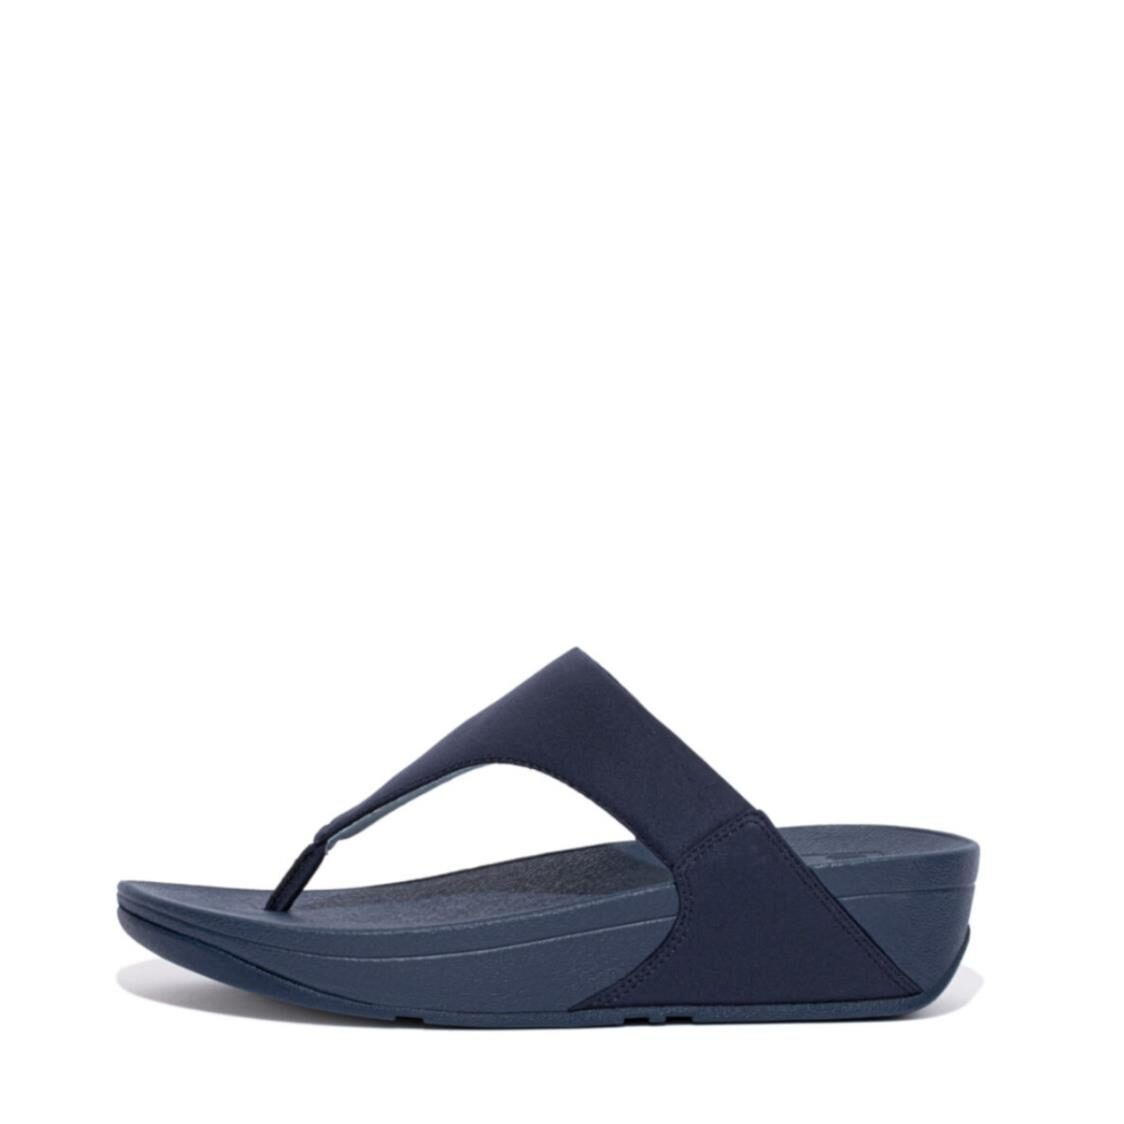 Fitflop Lulu Toe-post Sandals Midnight NavyPale Blue EE4-893